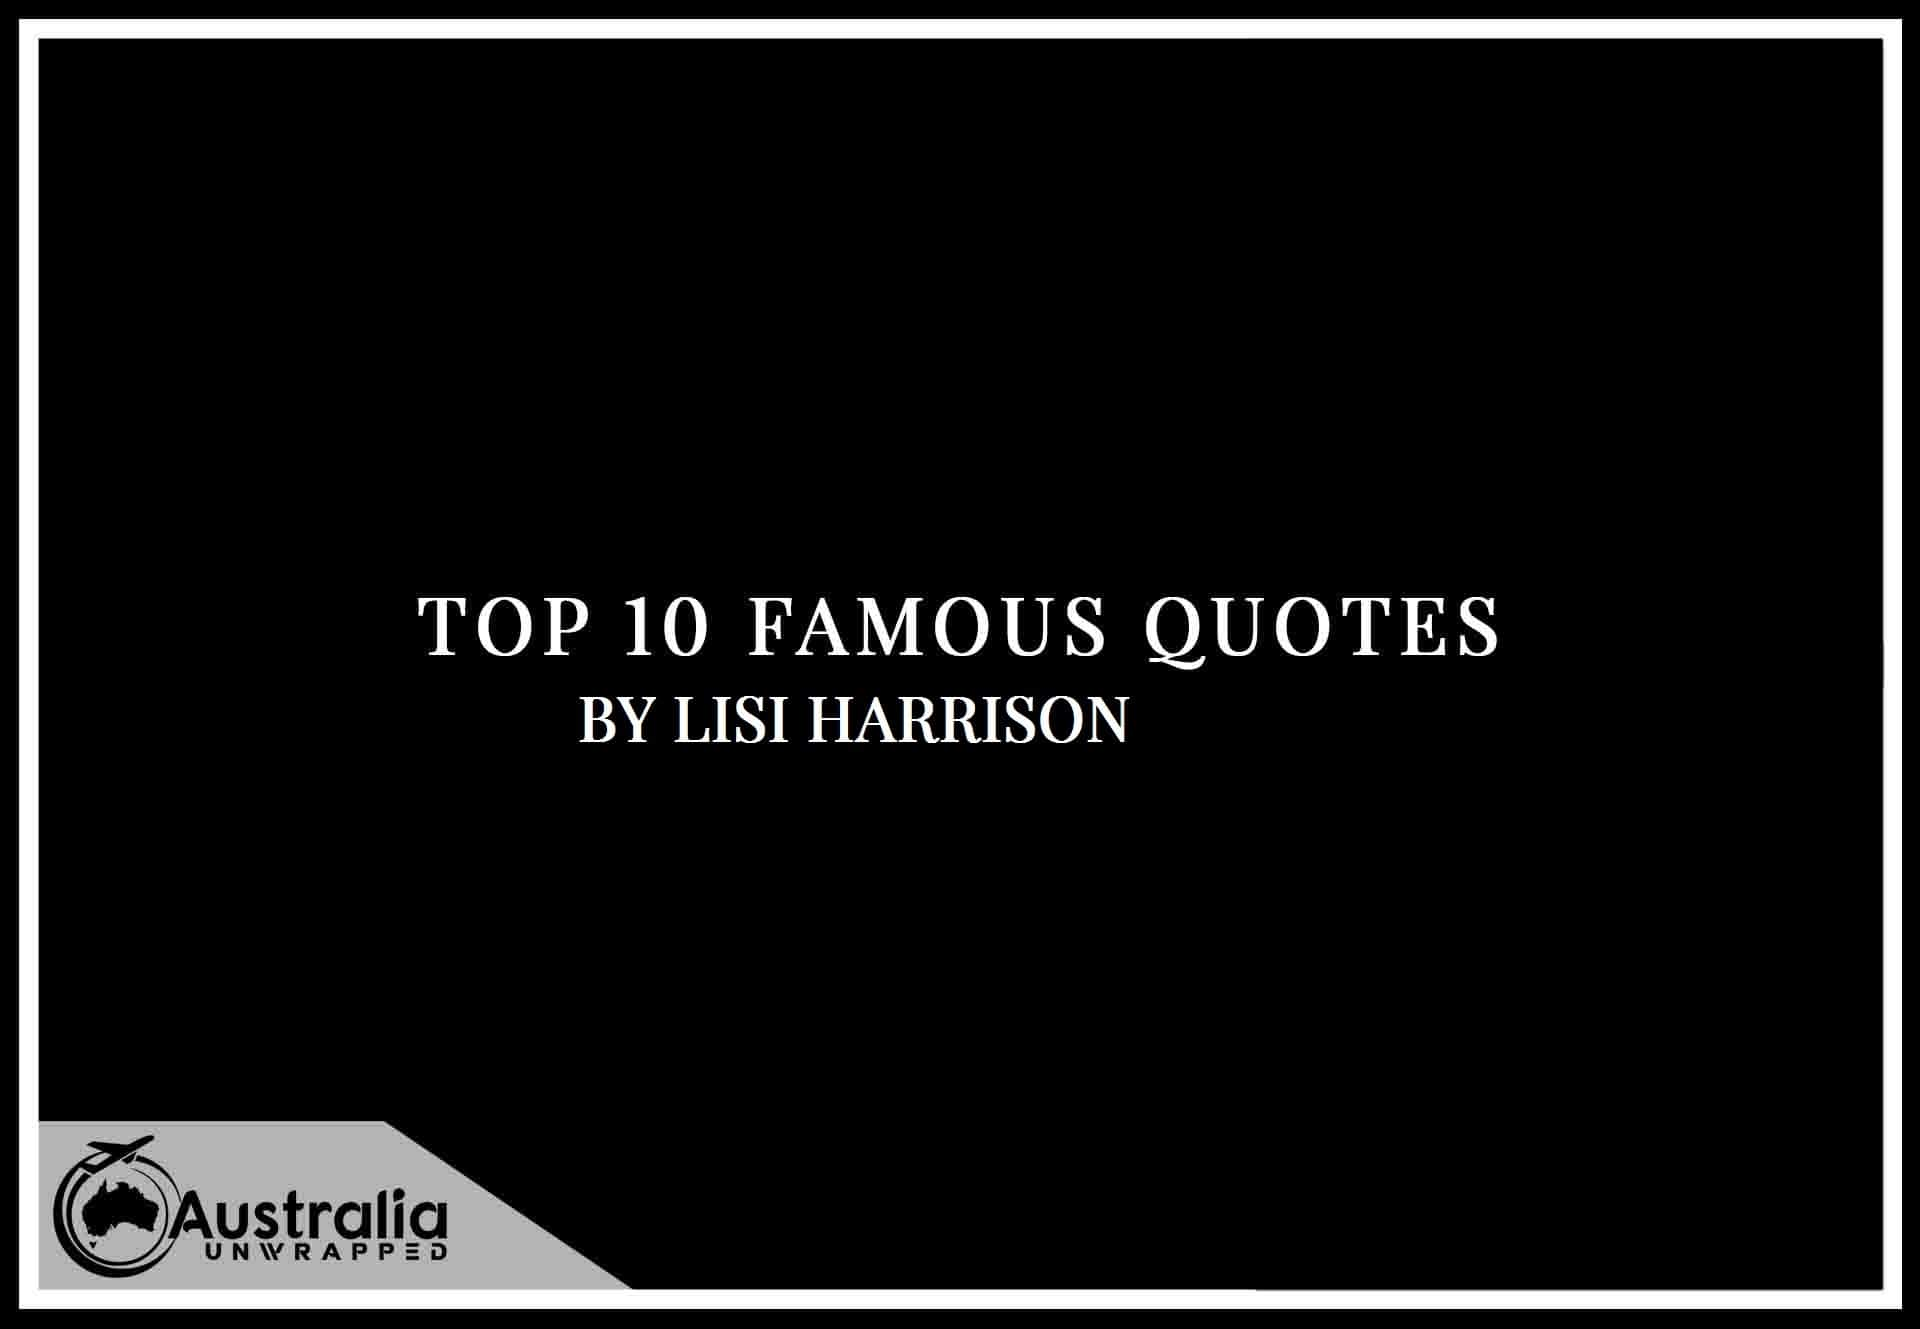 Lisi Harrison's Top 10 Popular and Famous Quotes